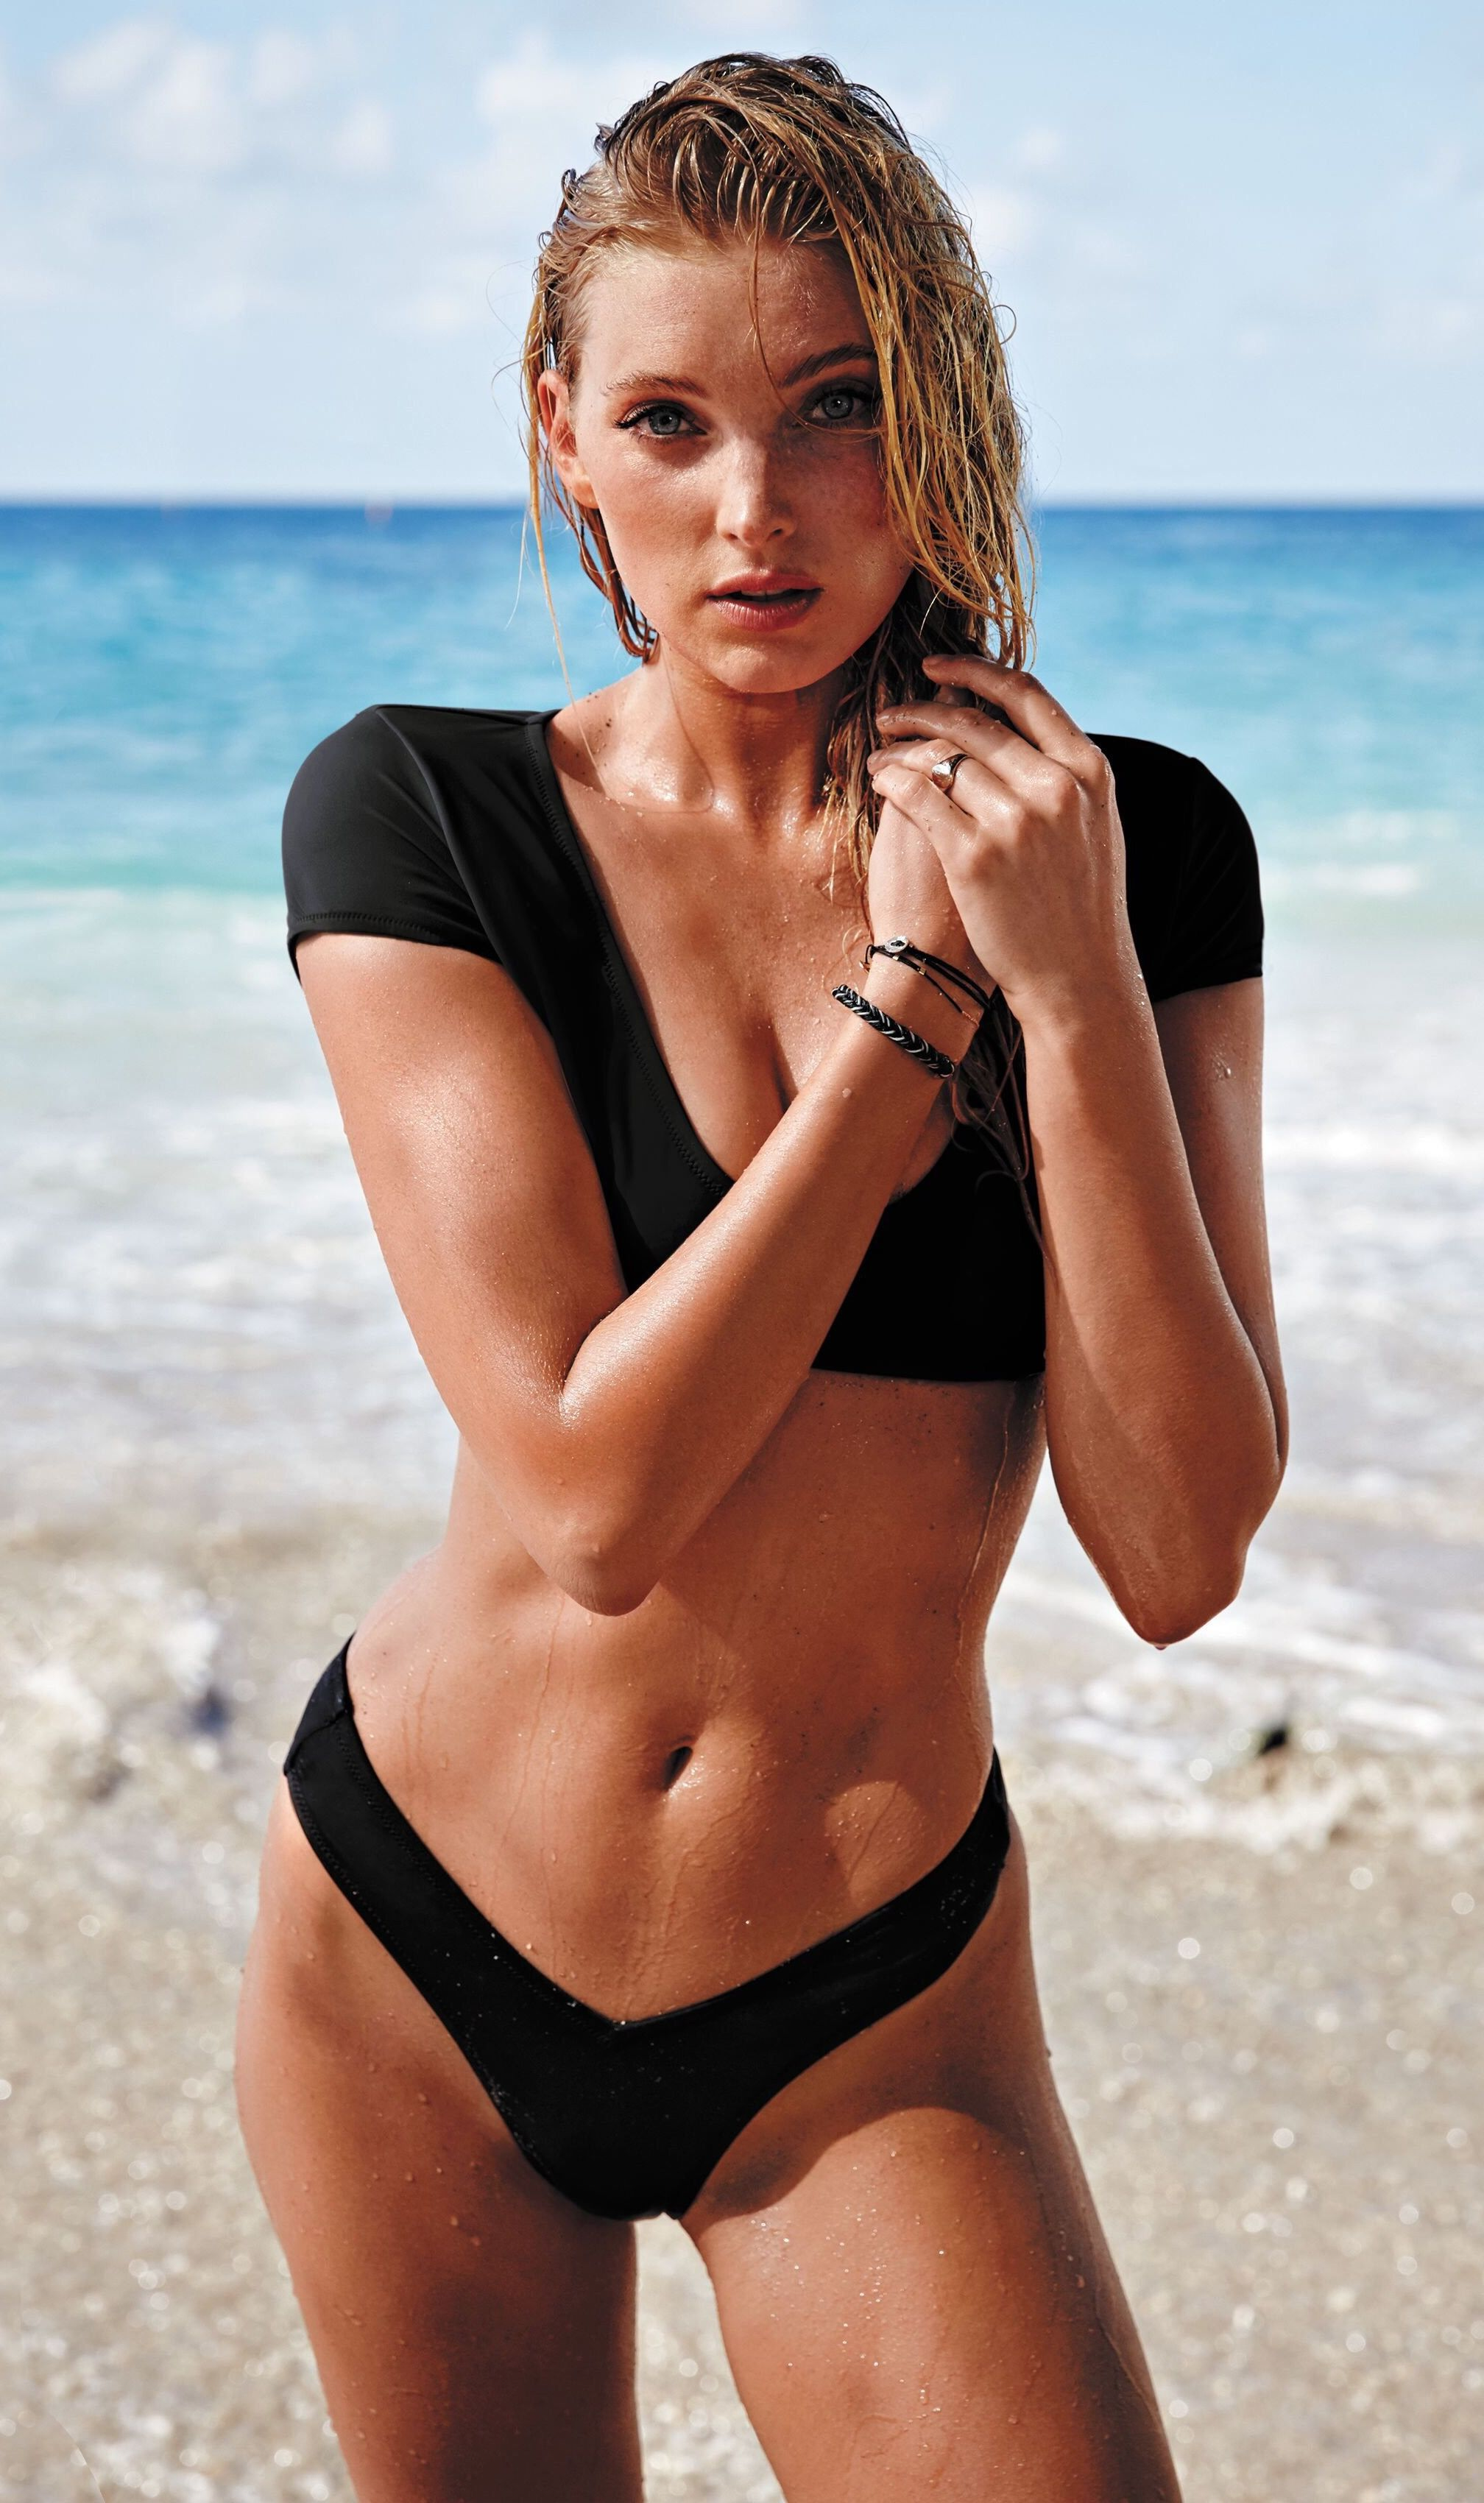 8980c882403c1 Pin by Bronc on Beautifully Fit Women in 2019 | Elsa hosk, Victoria ...